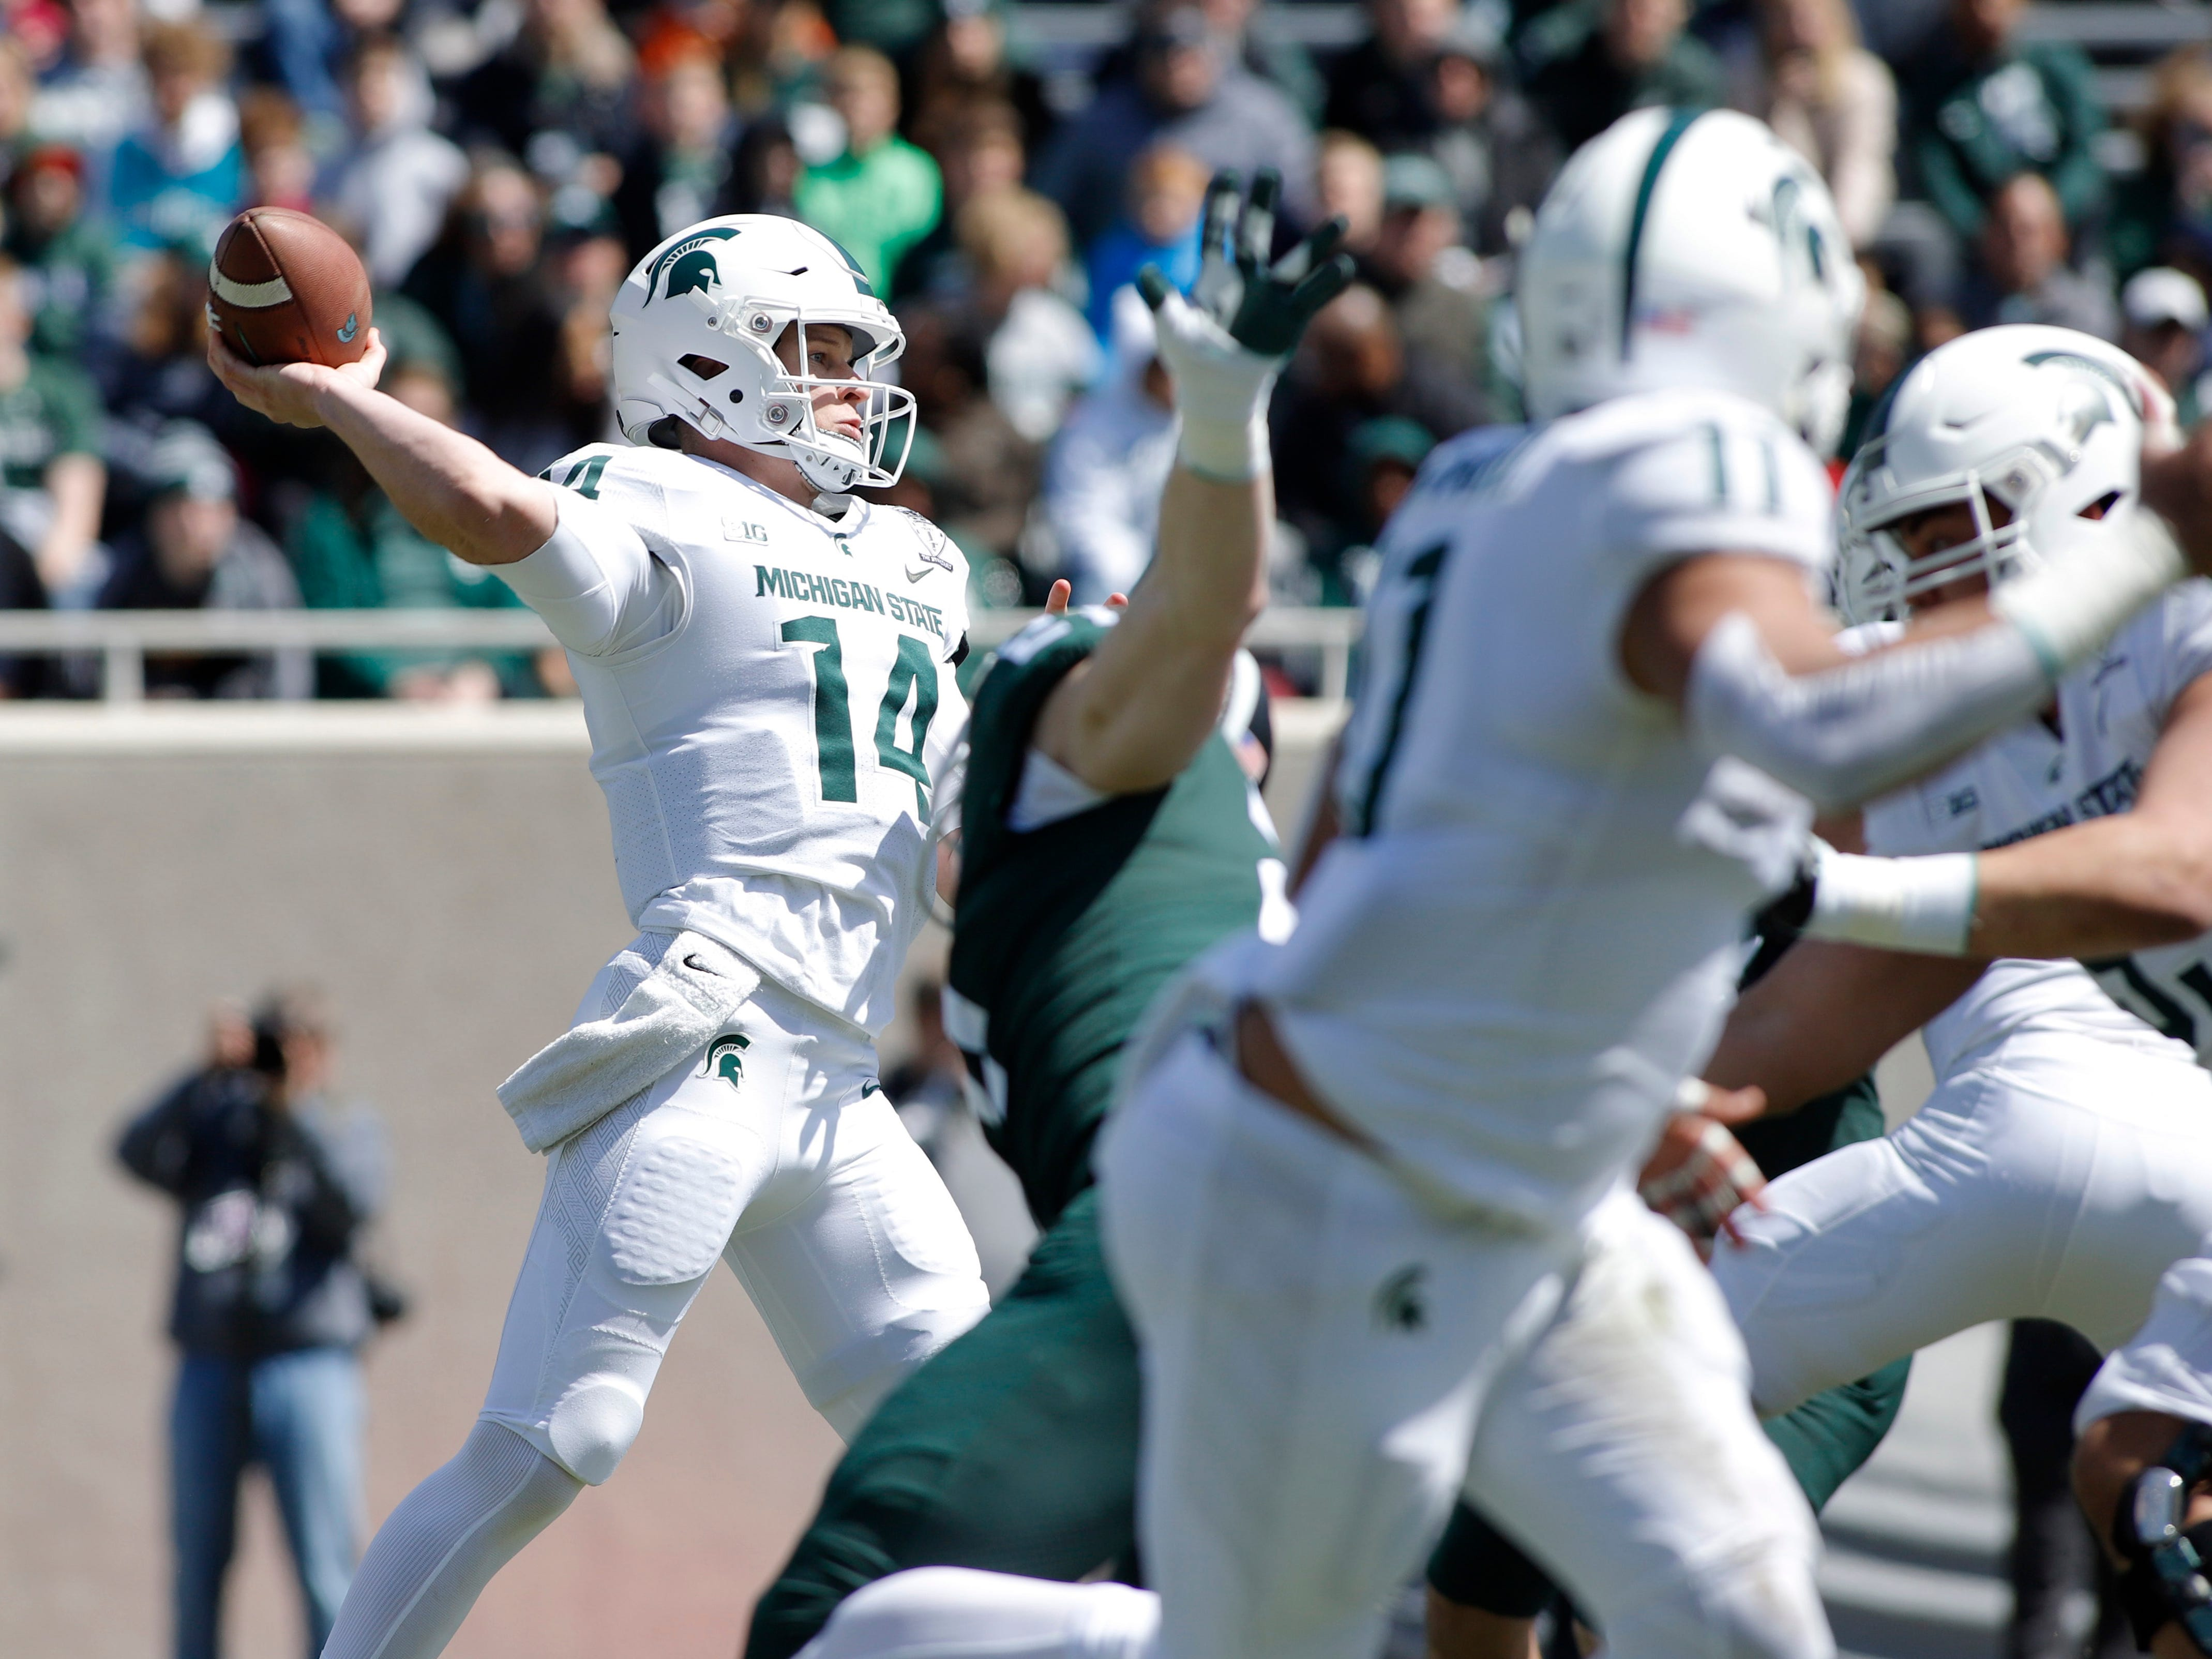 Michigan State quarterback Brian Lewerke, left, throws a pass during an NCAA college football spring scrimmage game, Saturday, April 13, 2019, in East Lansing, Mich. (AP Photo/Al Goldis)